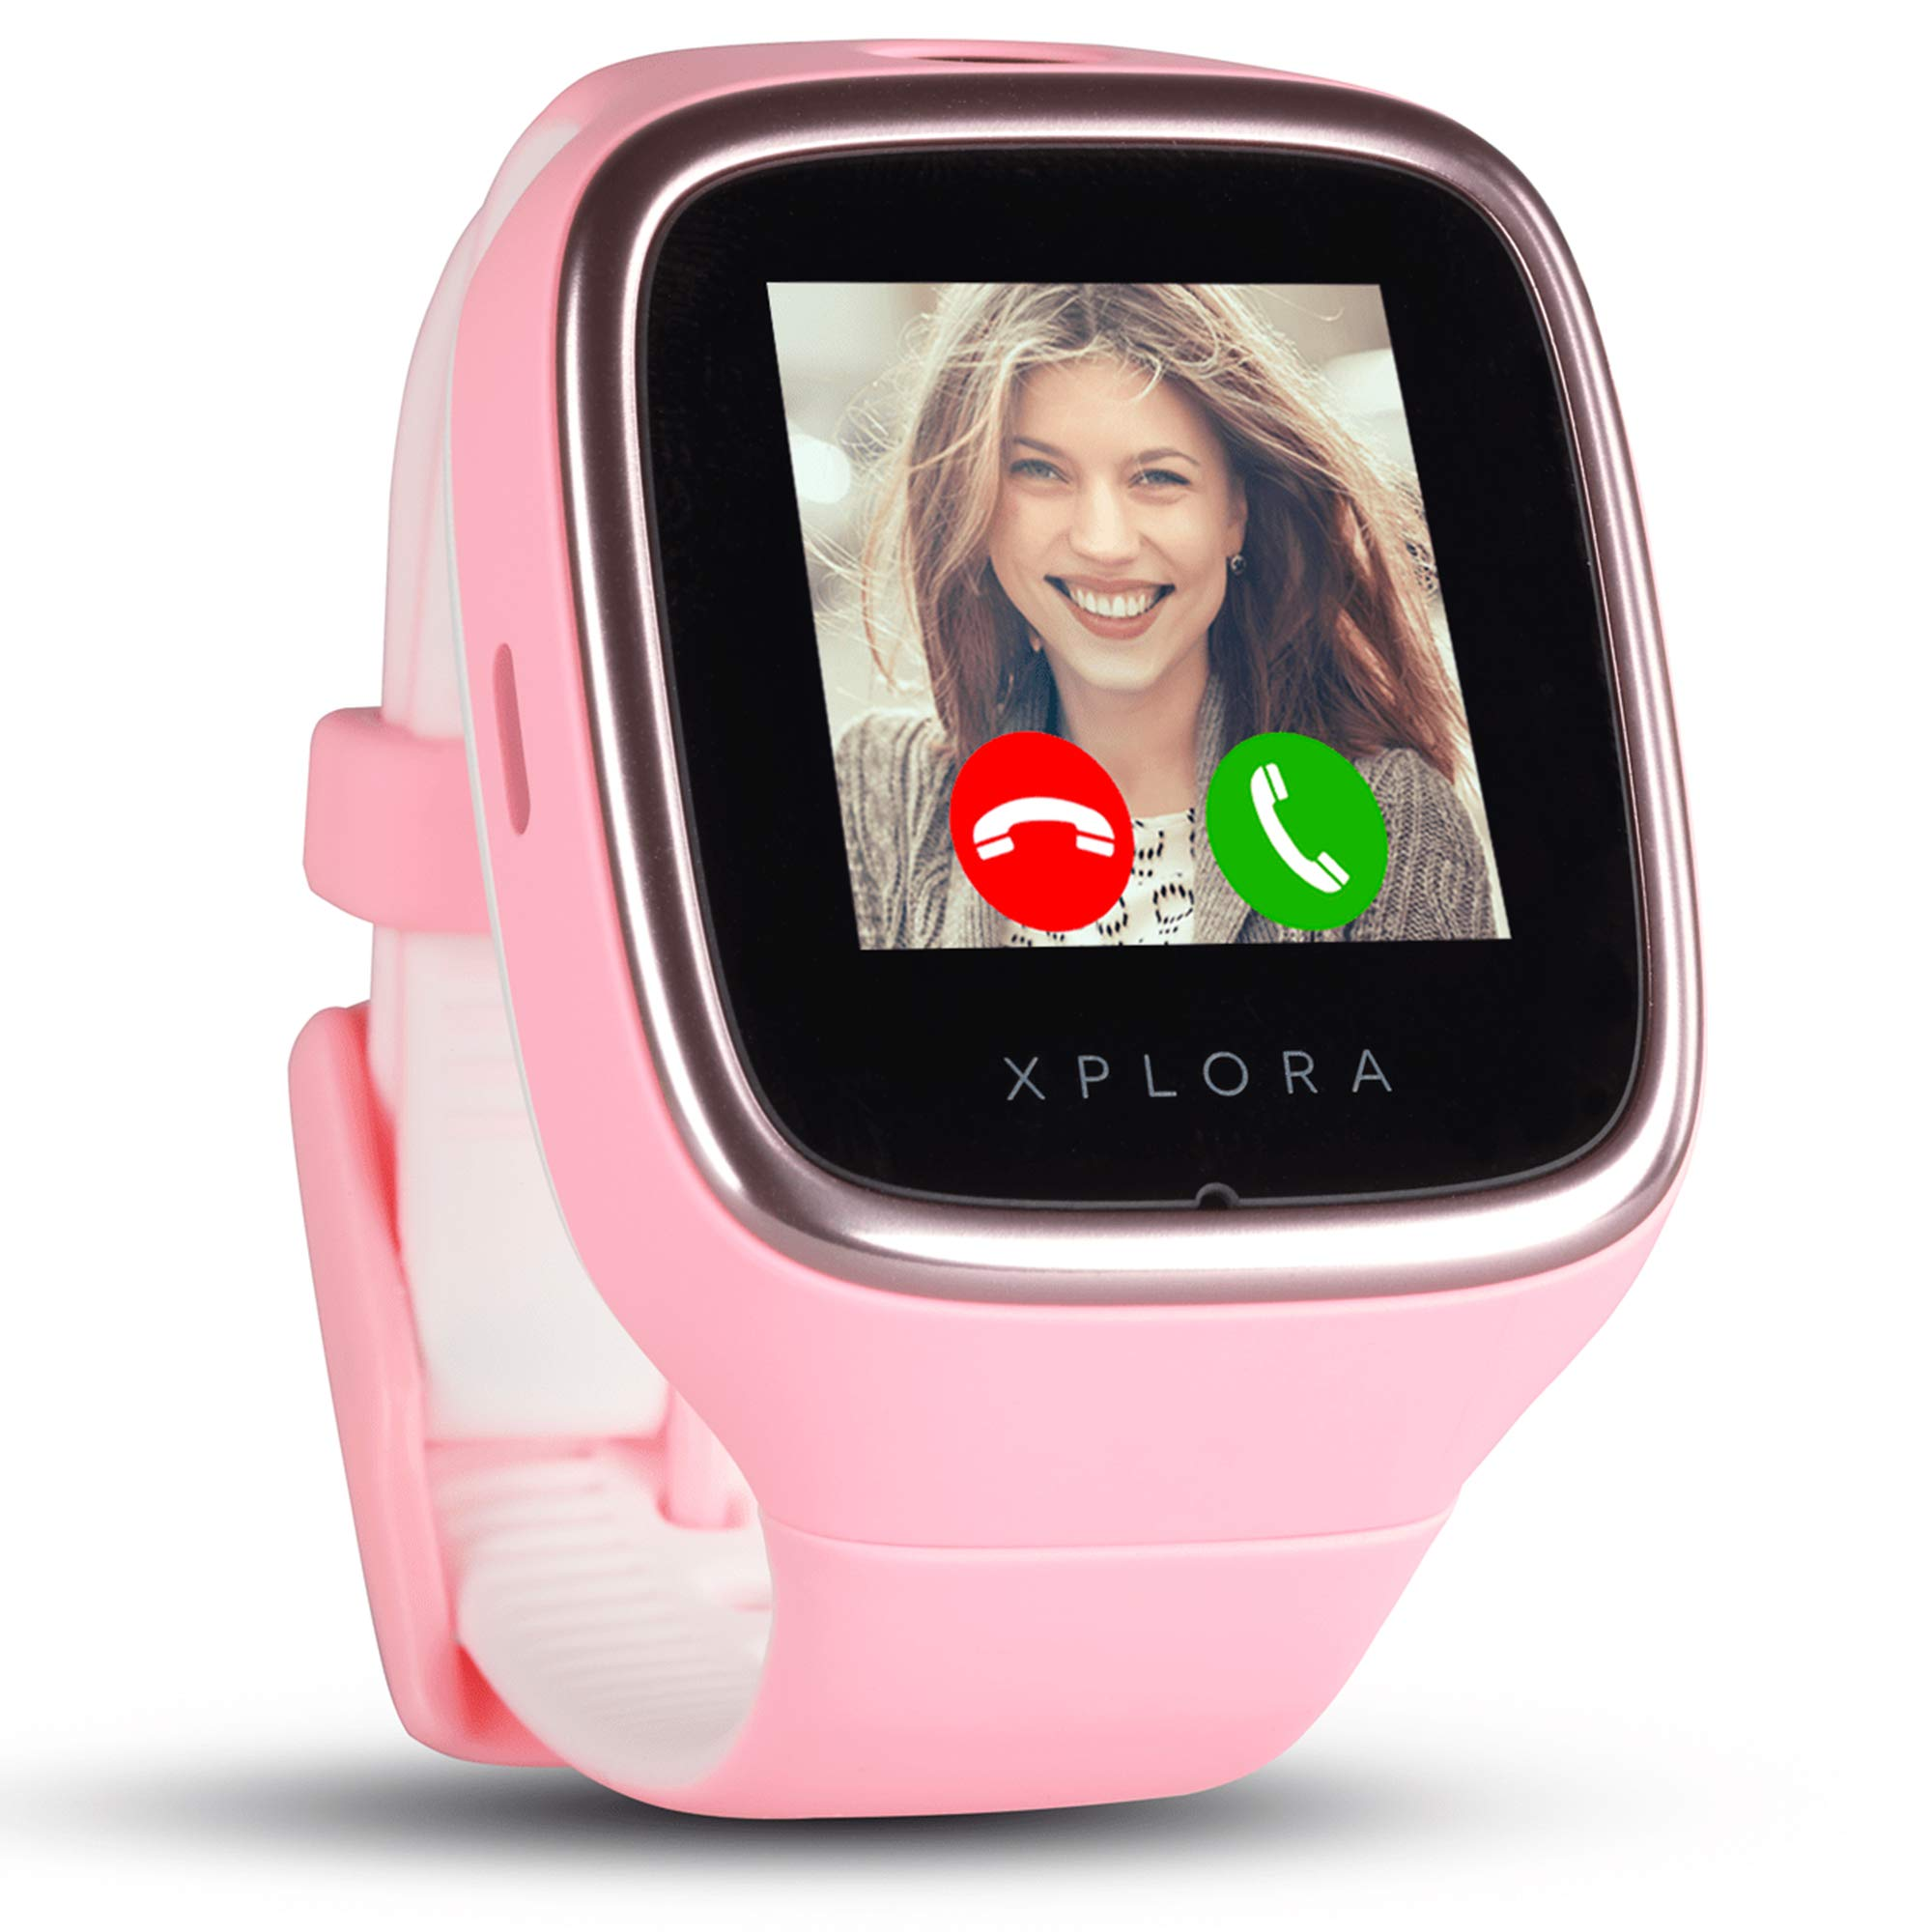 XPLORA 3S - Waterproof Watch Phone for children (SIM Free) - Calls, Messages, Kids School Mode, SOS function, GPS Location and Camera - Includes 2 Year Warranty (PINK)